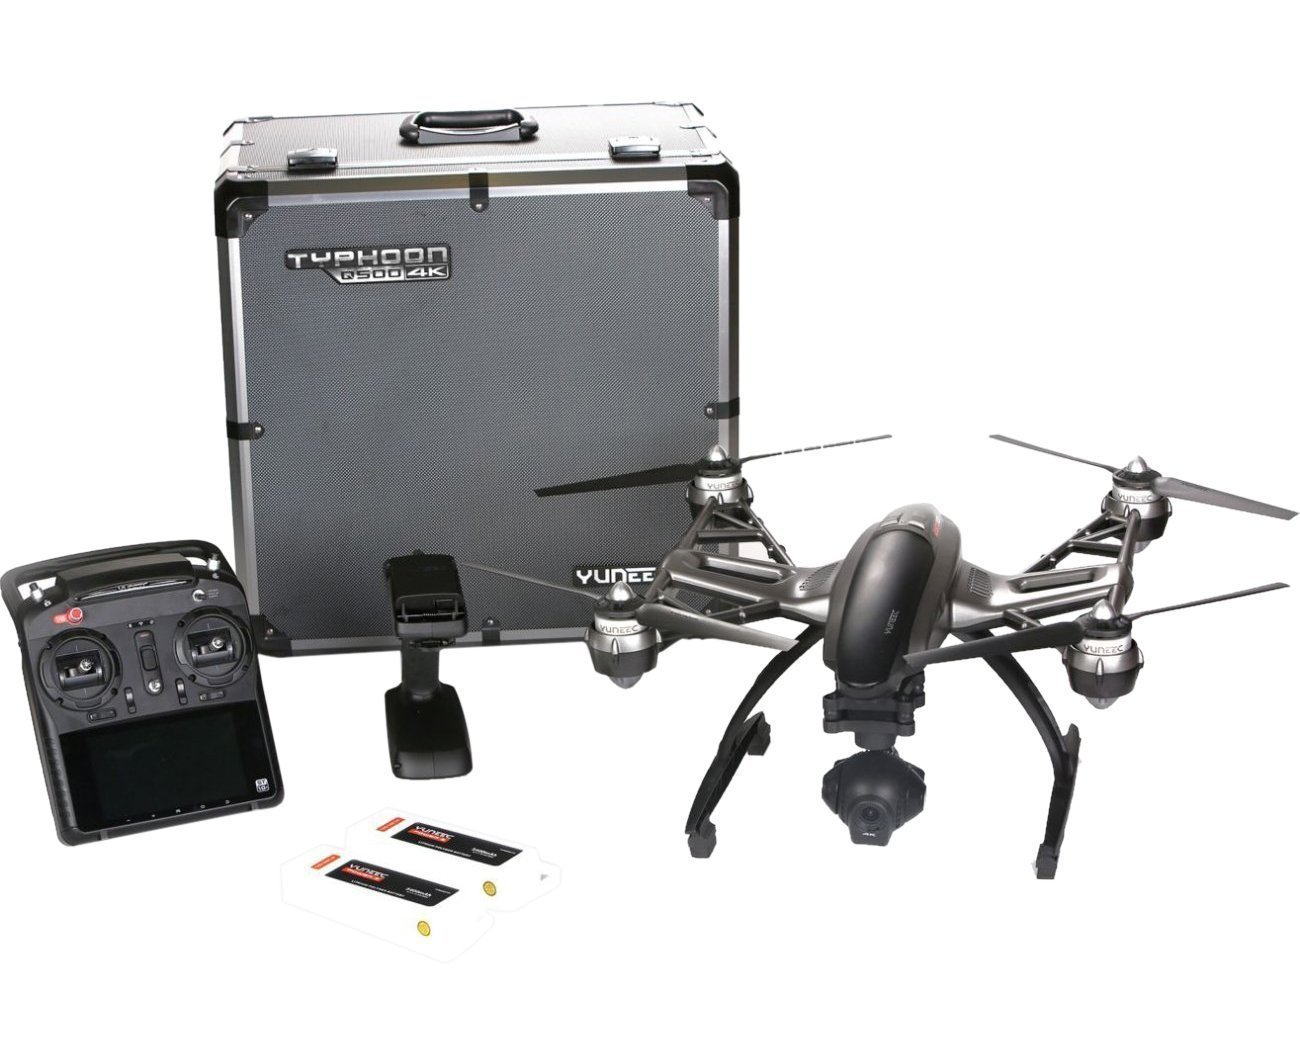 Yuneec Q500 4K Typhoon Quadcopter Drone RTF in Aluminum Case with CGO3 Camera, ST10+ & Steady Grip (Certified Refurbished)